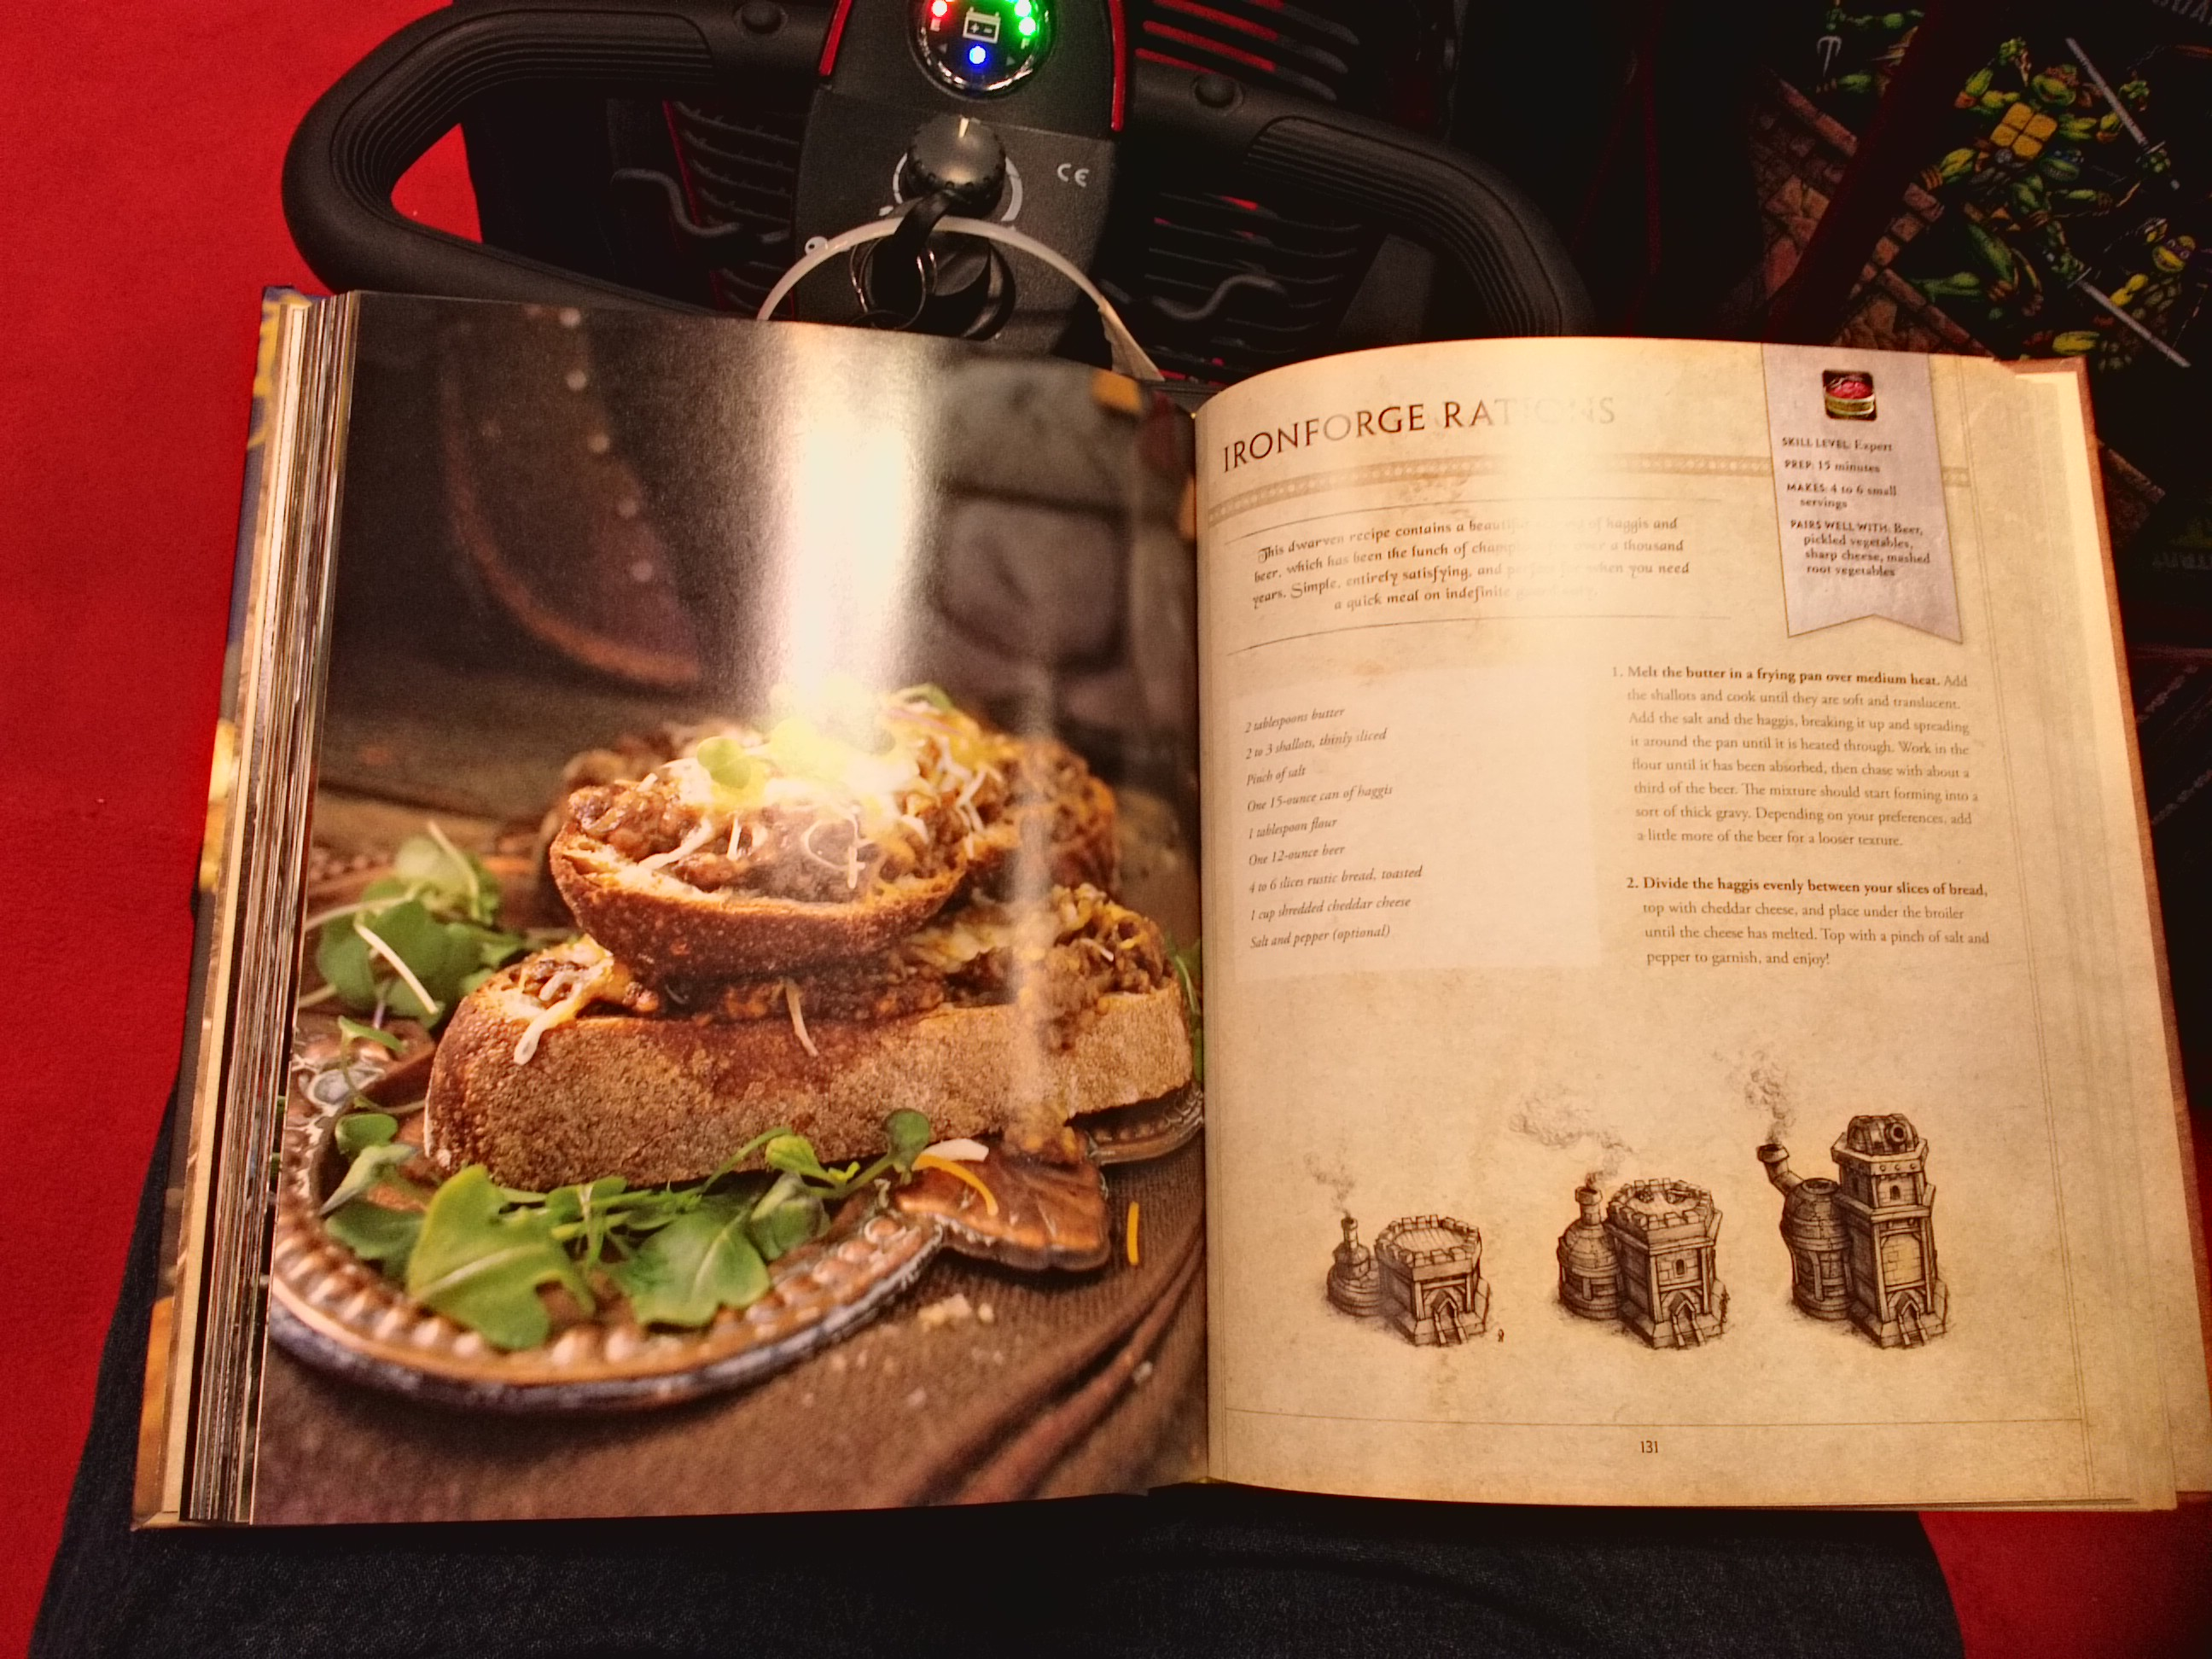 Nycc 2016 book signing world of warcraft the official cookbook nycc 2016 book signing world of warcraft the official cookbook forumfinder Images